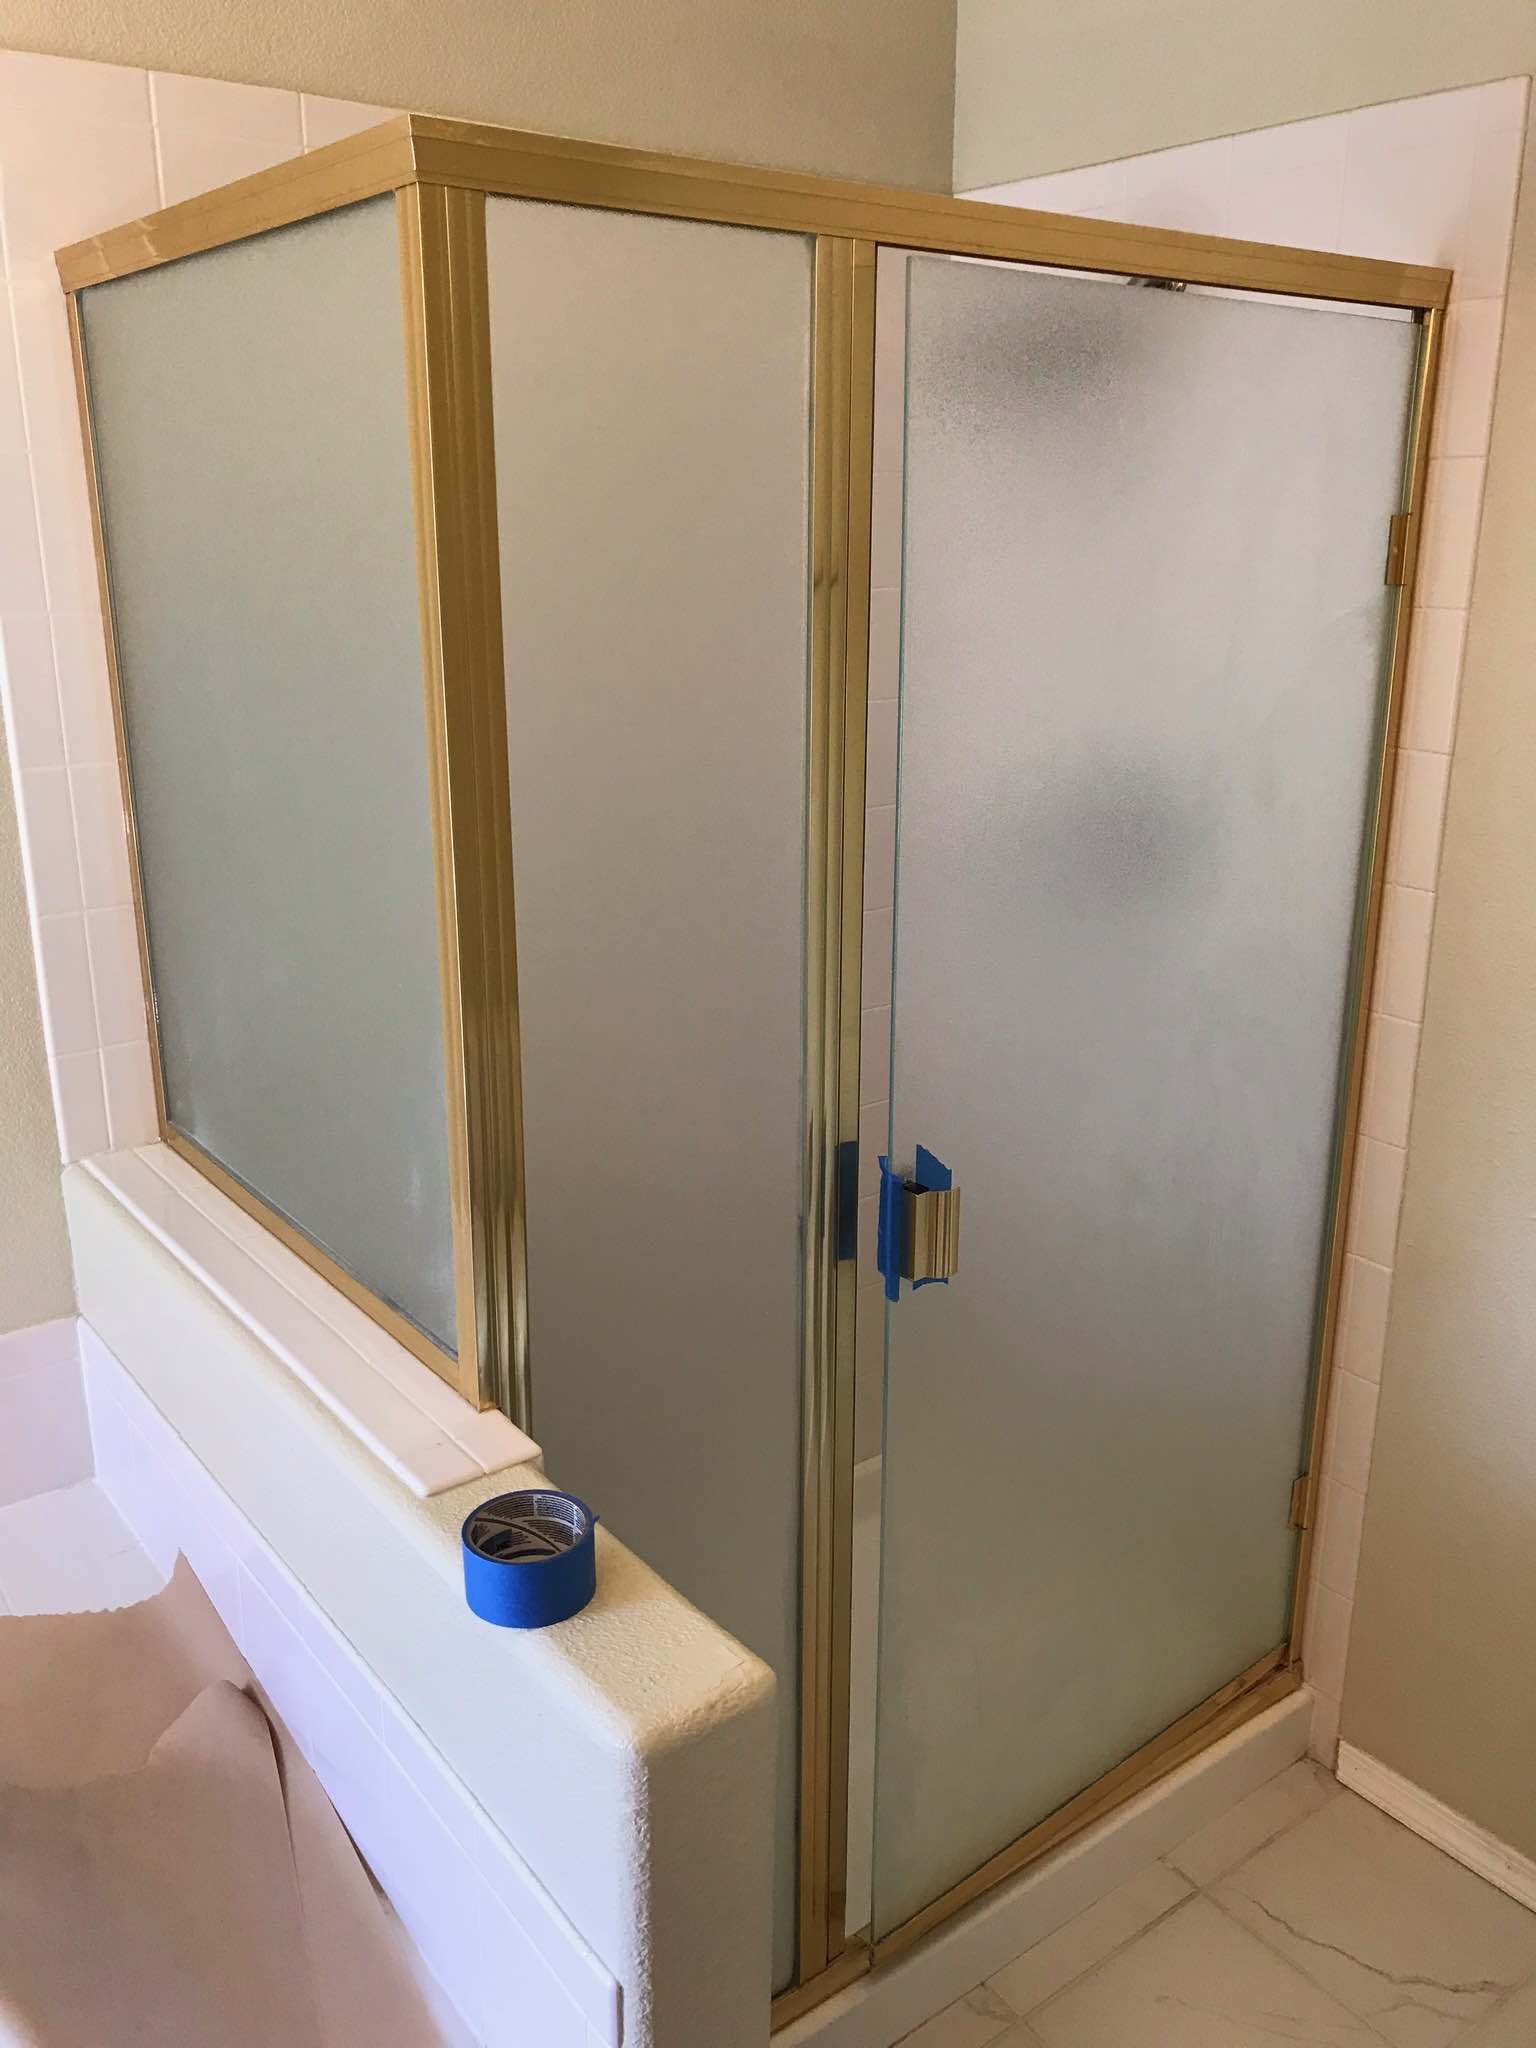 How To Paint A Brass Shower Frame For 30 Shower Door Diy Diy